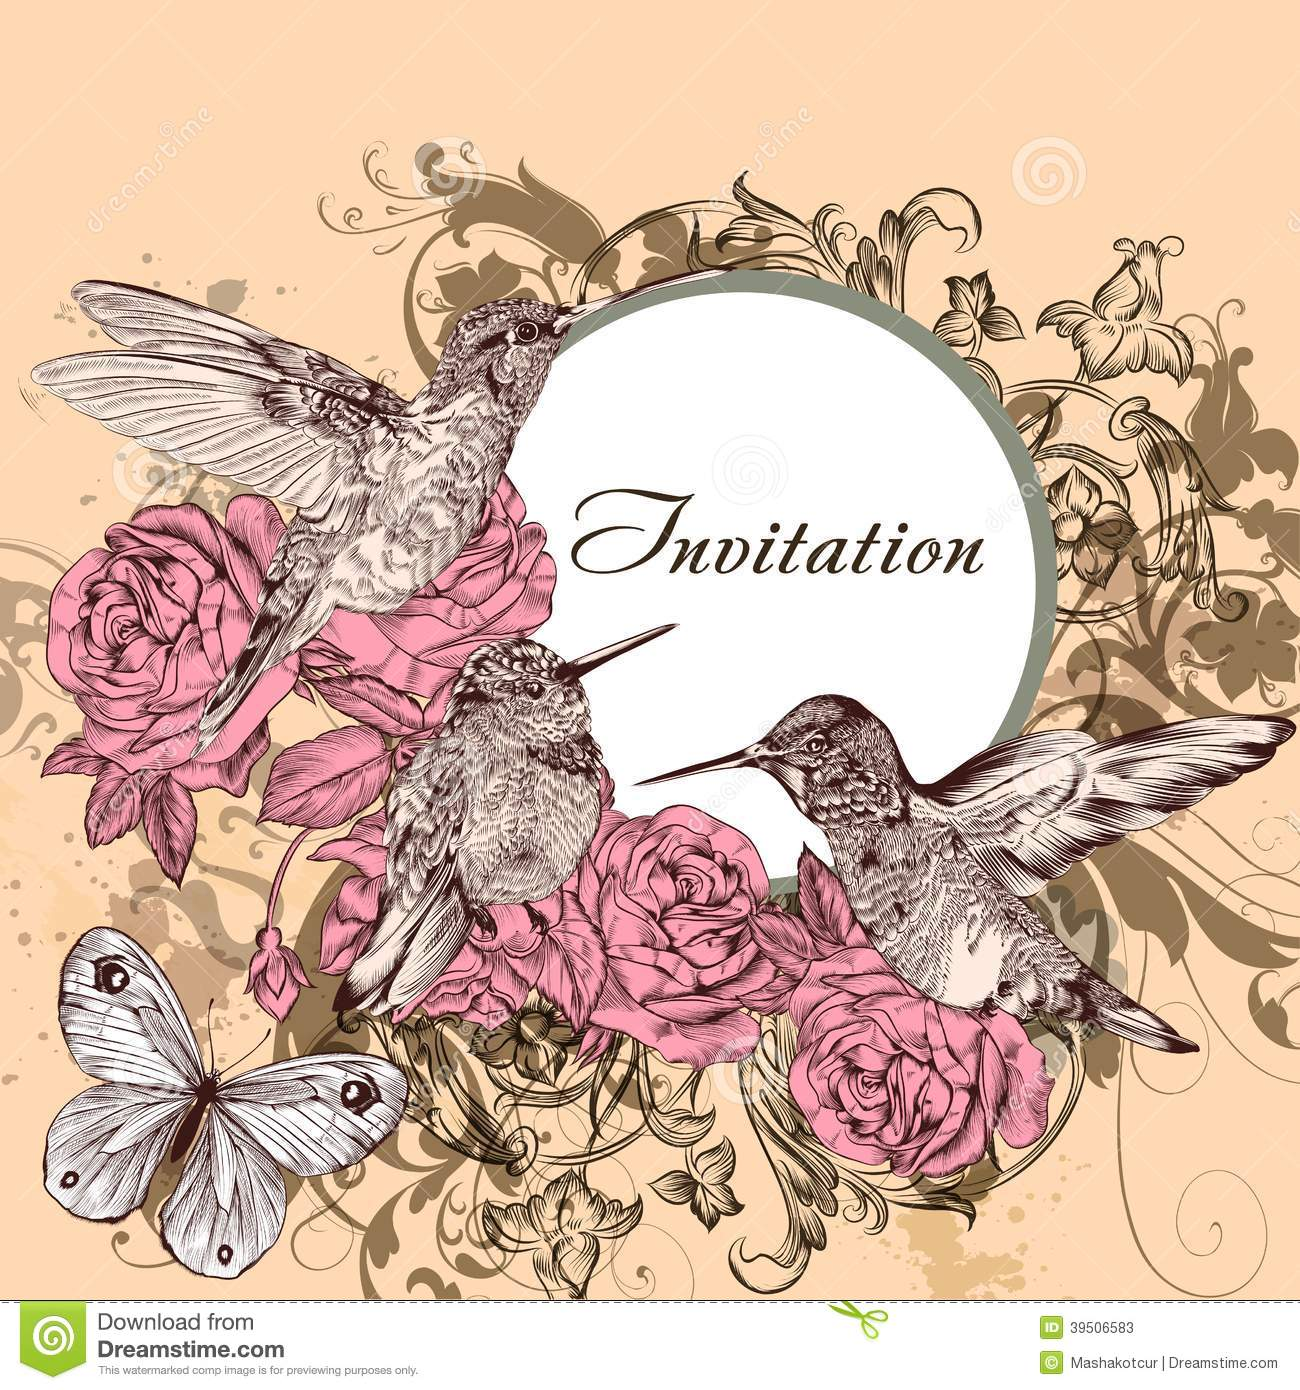 Floral invitation card with humming birds